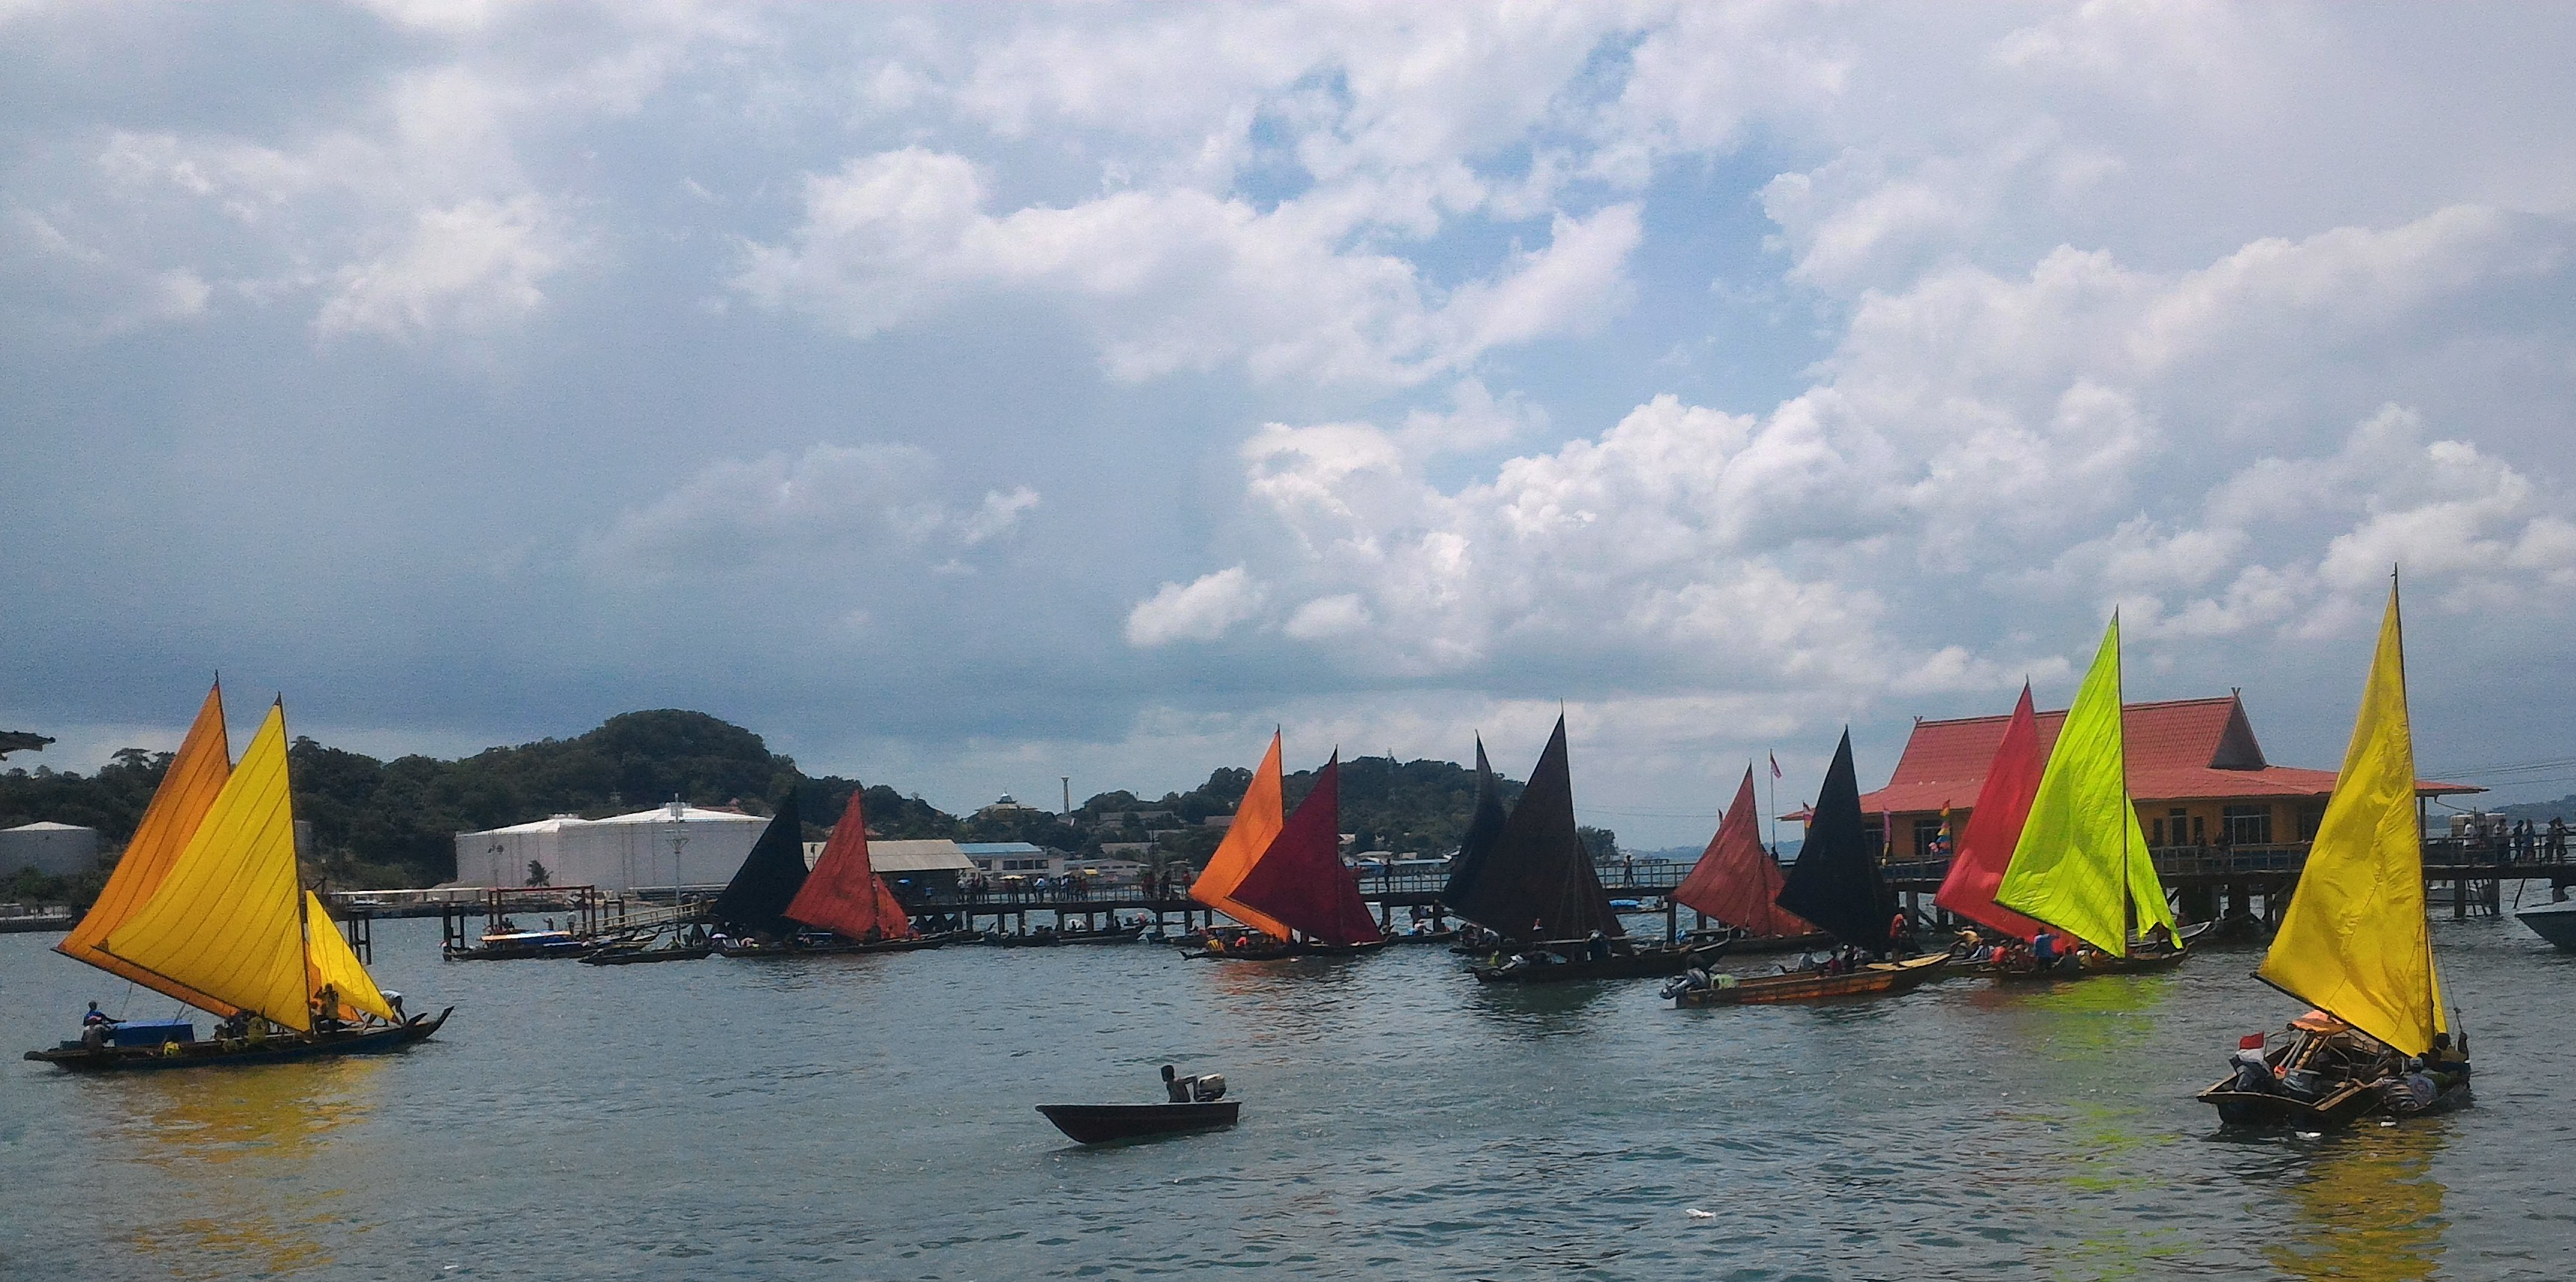 Enjoying The 59th Boat Race at Belakang Padang, Batam